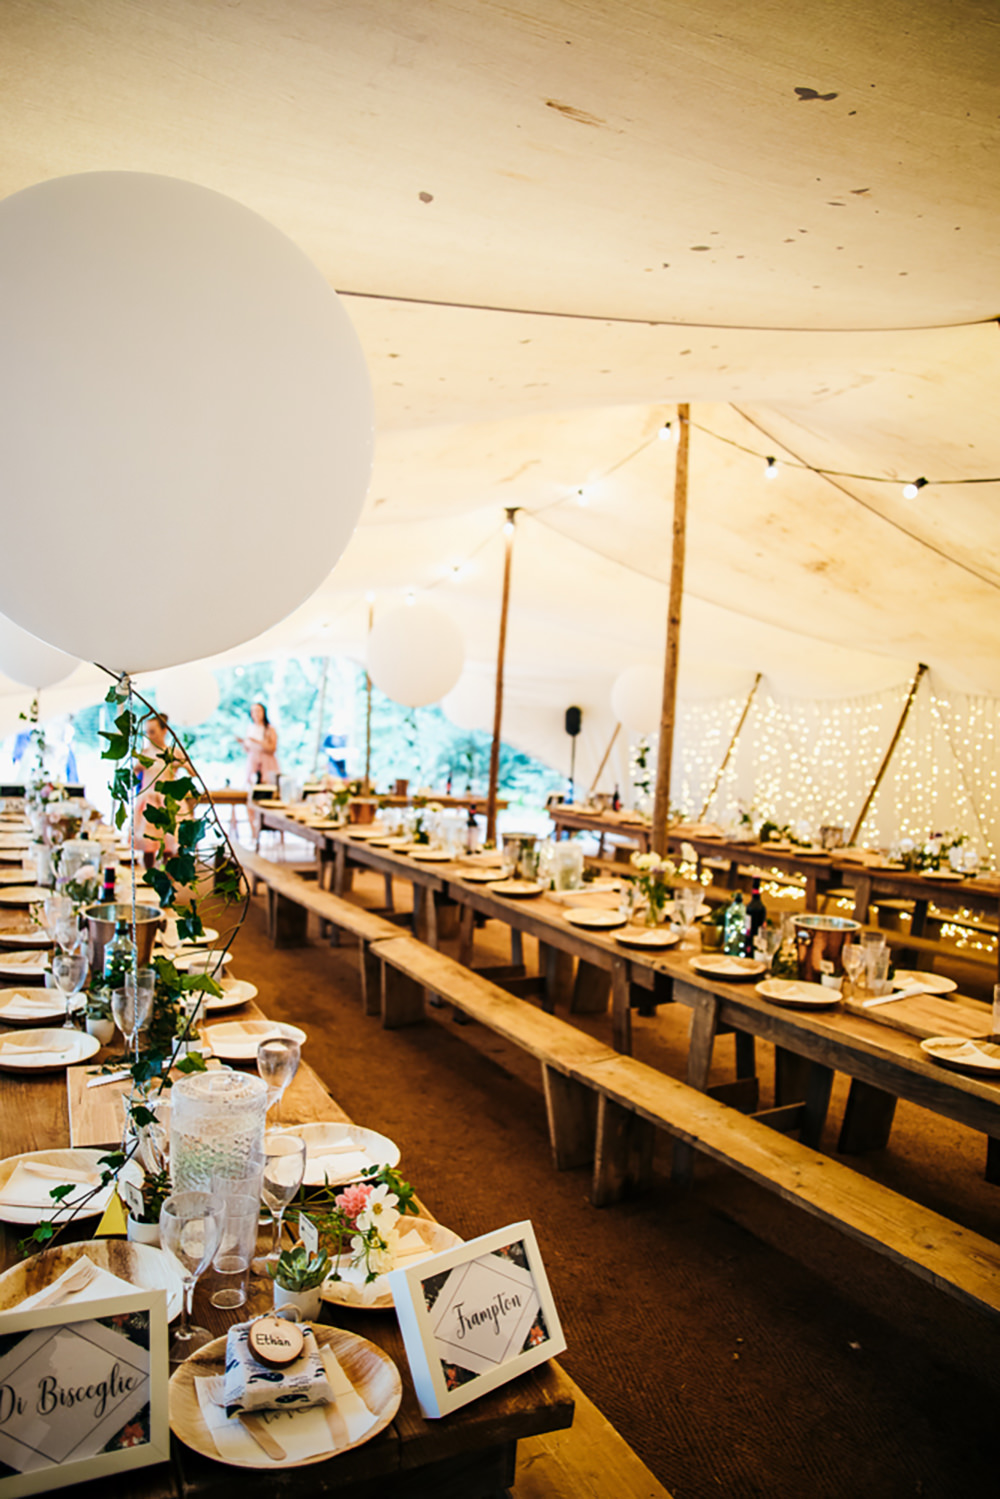 Stretch Tent Marquee Pole Long Trestle Tables Giant Balloons Decor Lila's Wood Wedding Two-D Photography